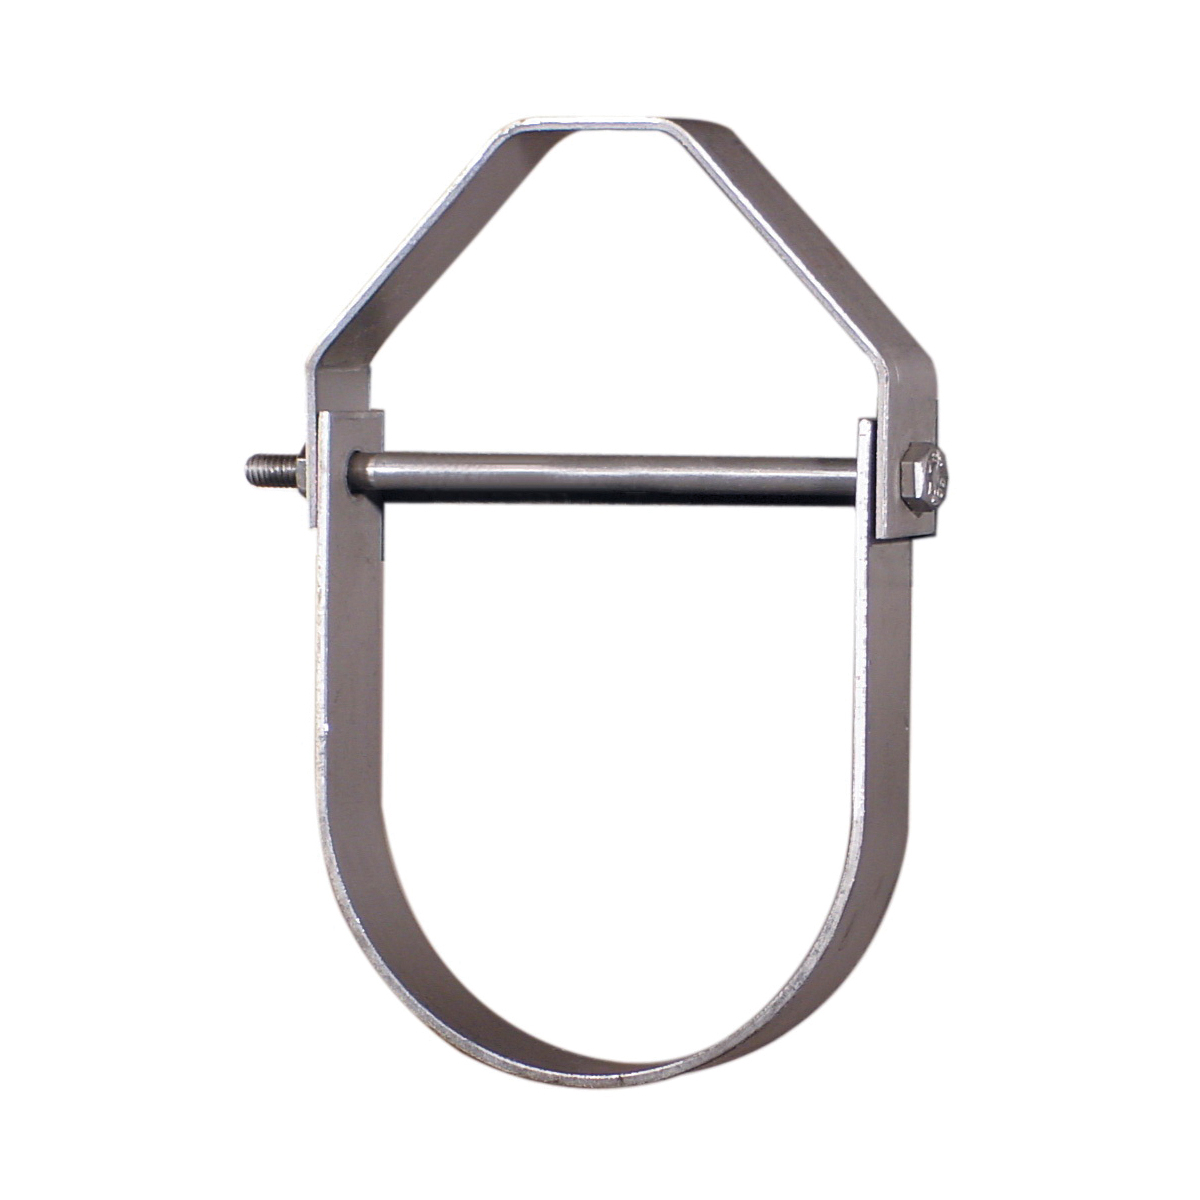 SPF/Anvil™ 0560006017 FIG 65 Adjustable Clevis Hanger, 3 in Pipe, 3/8 in Rod, 350 lb Load, Carbon Steel, Black Oxide